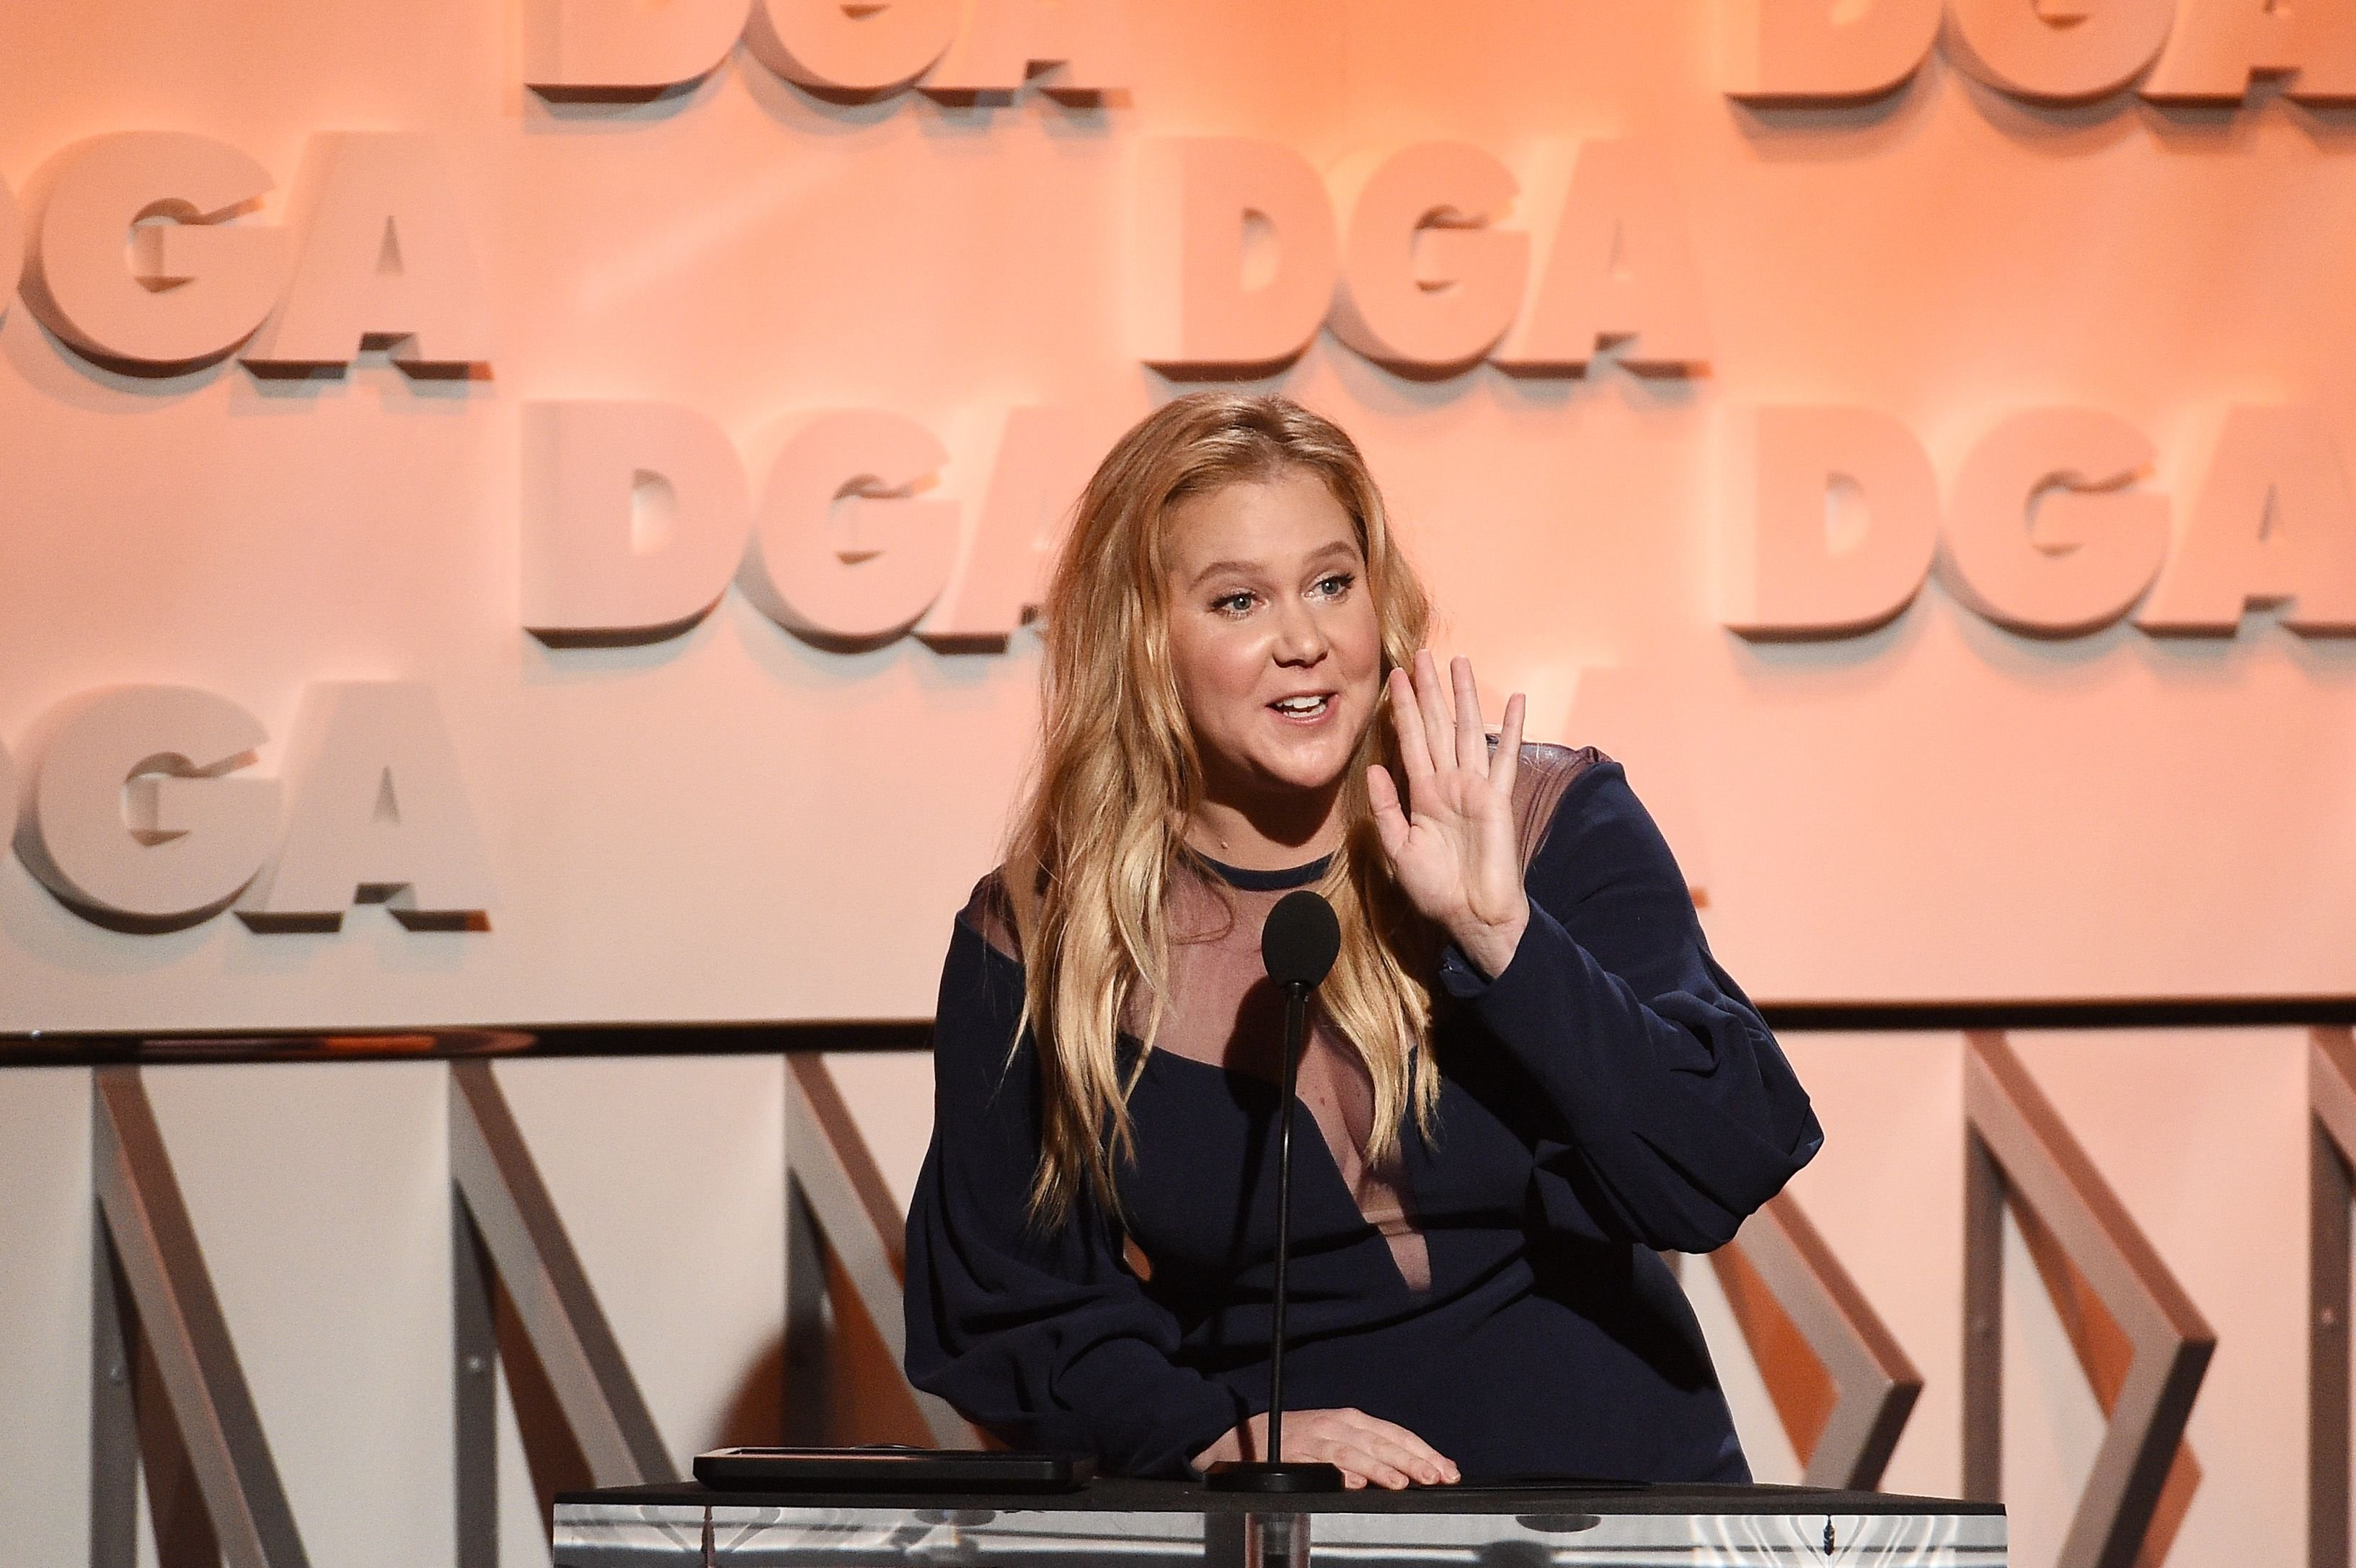 Amy Schumer at the 70th Annual Directors Guild Of America Awards on February 3, 2018, in Beverly Hills, California | Photo: Kevork Djansezian/Getty Images